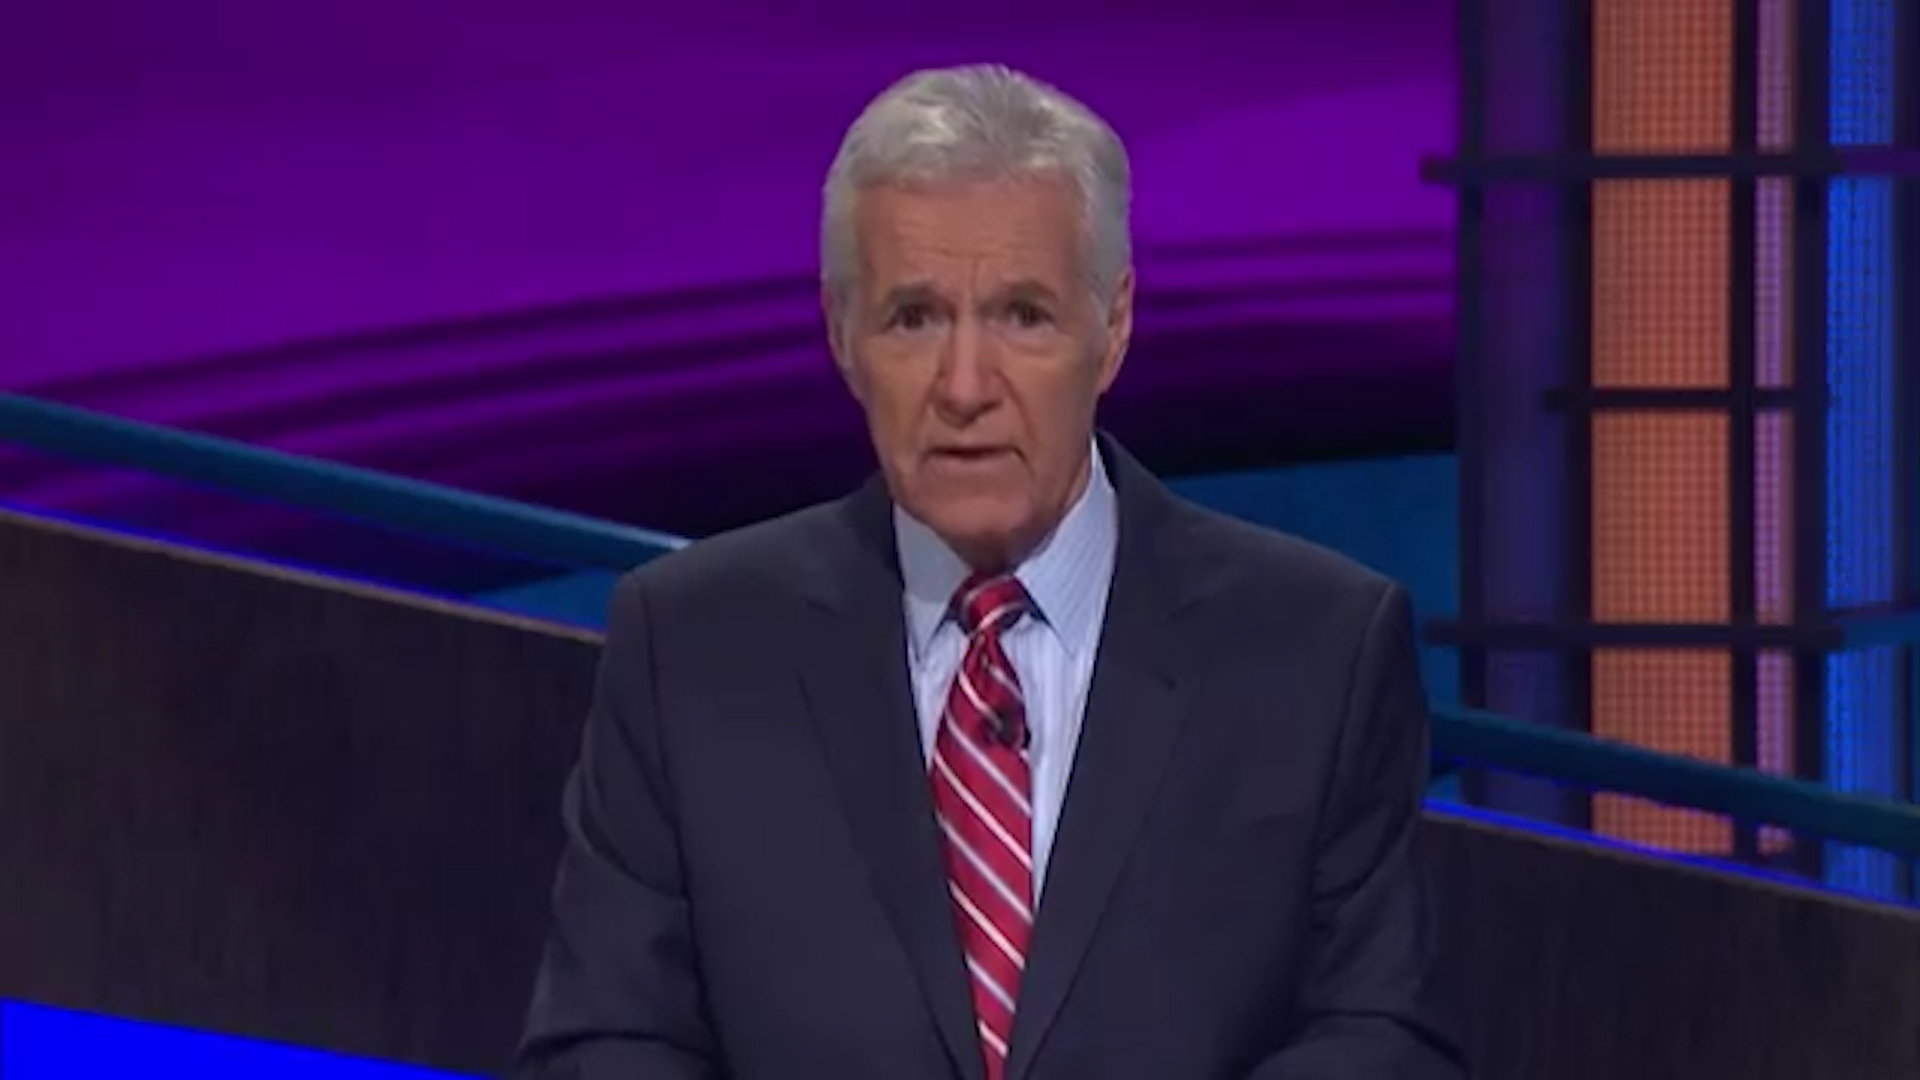 Alex Trebek Opens Up on Filming While in Treatment: 'I